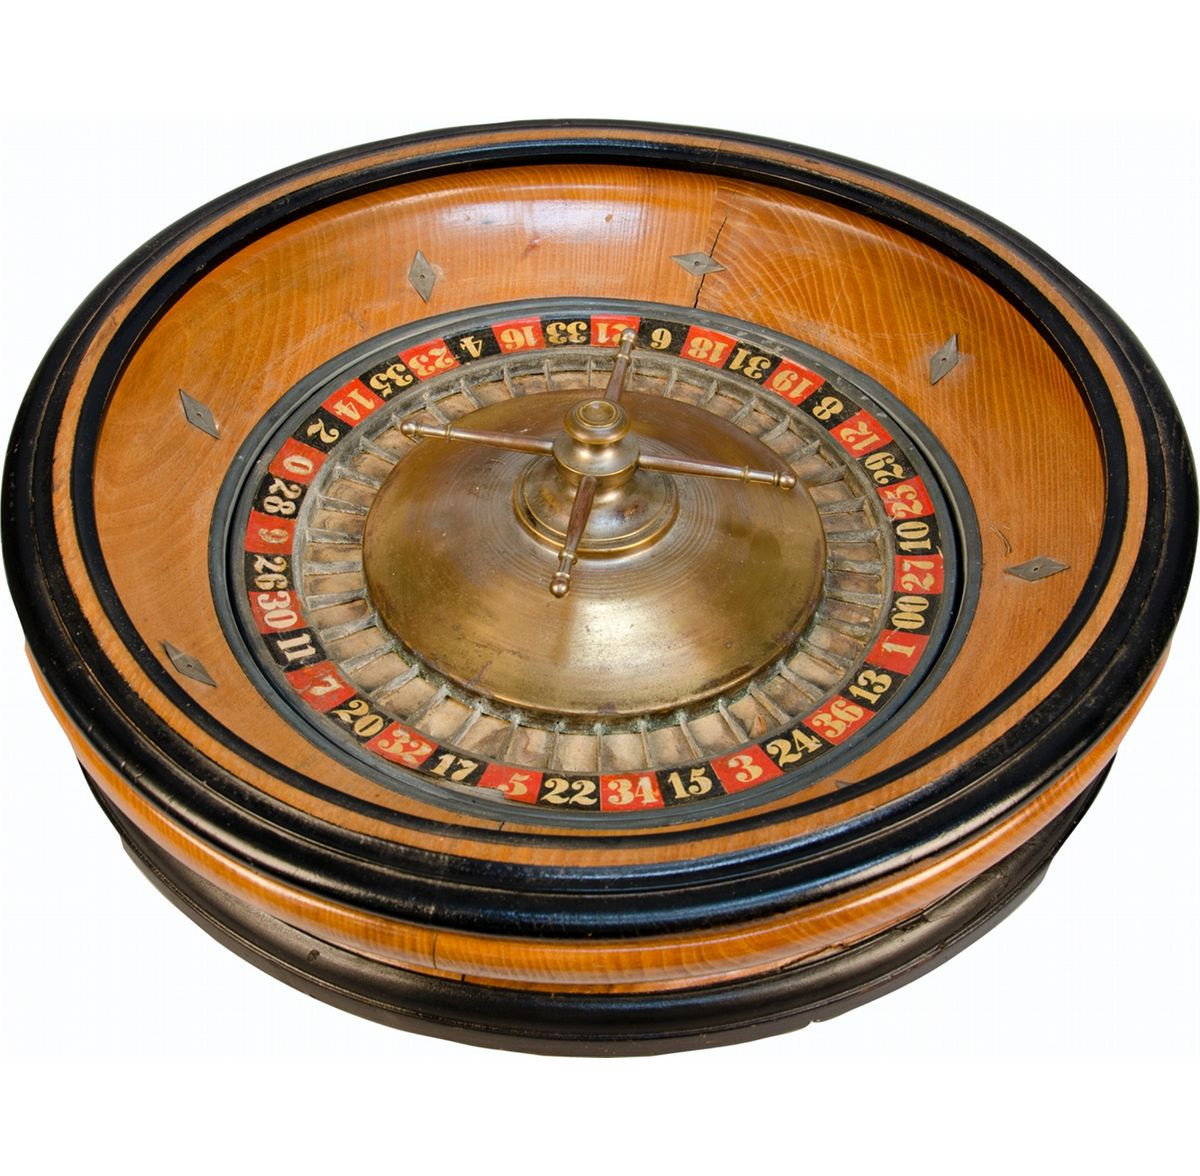 Roulette ball for sale